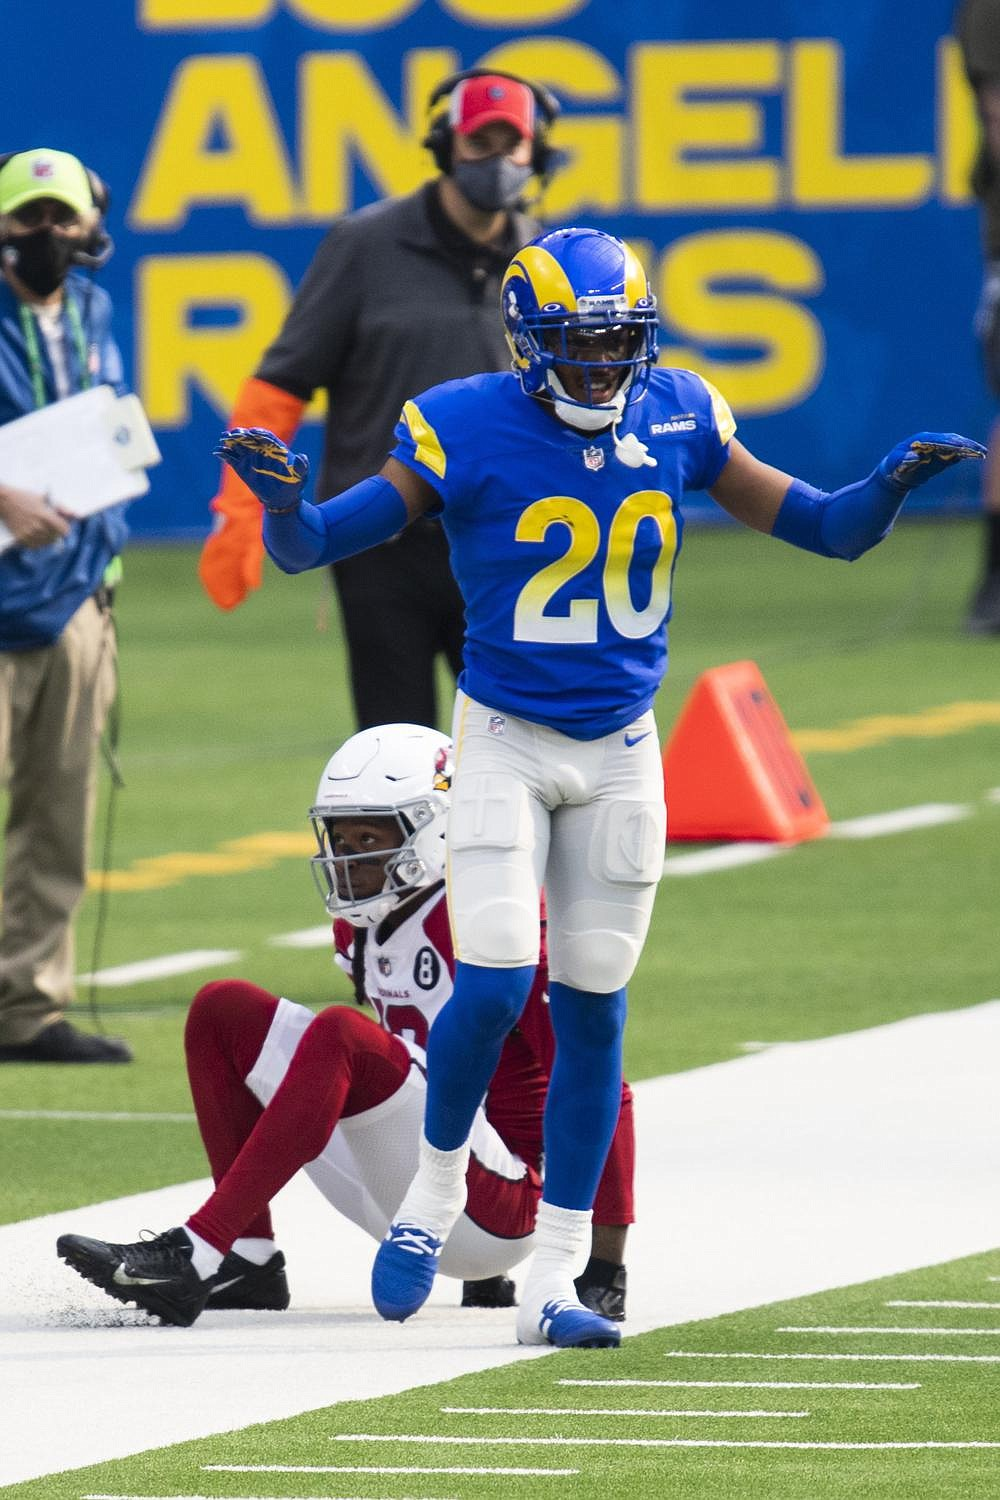 Los Angeles Rams cornerback and All-Pro selection Jalen Ramsey is used to going up against the top receivers in the NFL. But Ramsey will have his toughest challenge of the season today against Green Bay's Davante Adams, who has a league-high 18 touchdown receptions this season. (AP/Kyusung Gong)